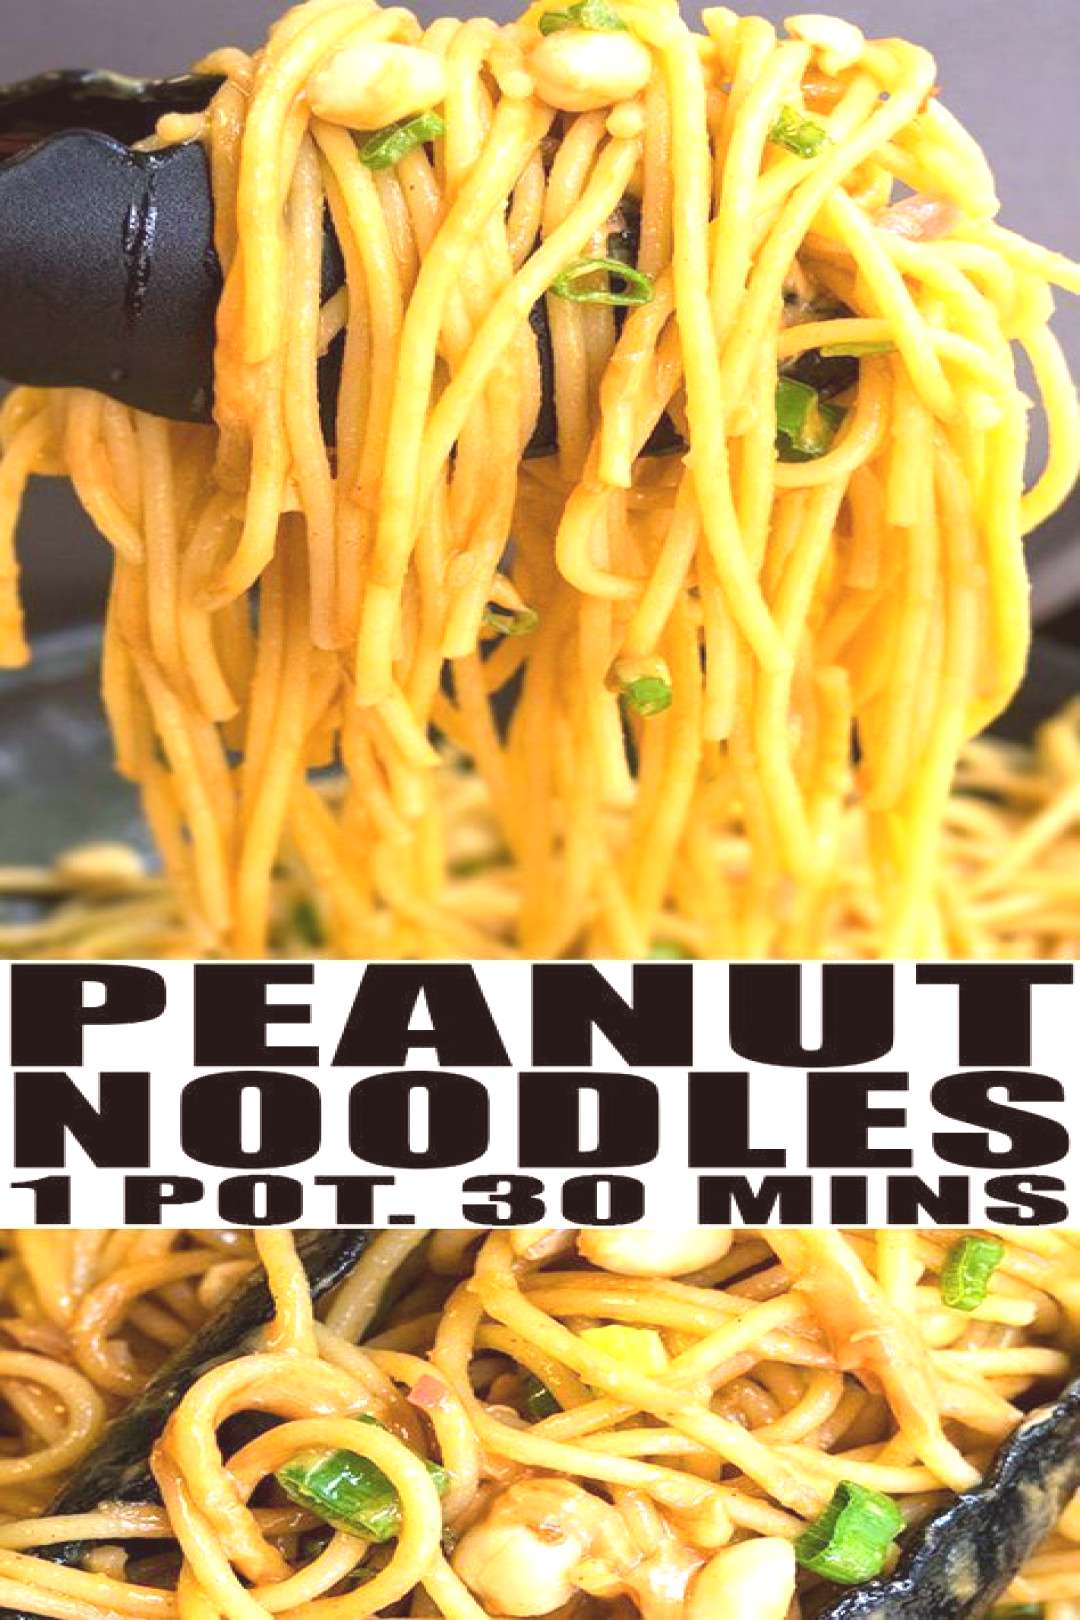 PEANUT NOODLES RECIPE- Quick easy healthy vegetarian slightly spicy made with simple ingredients in